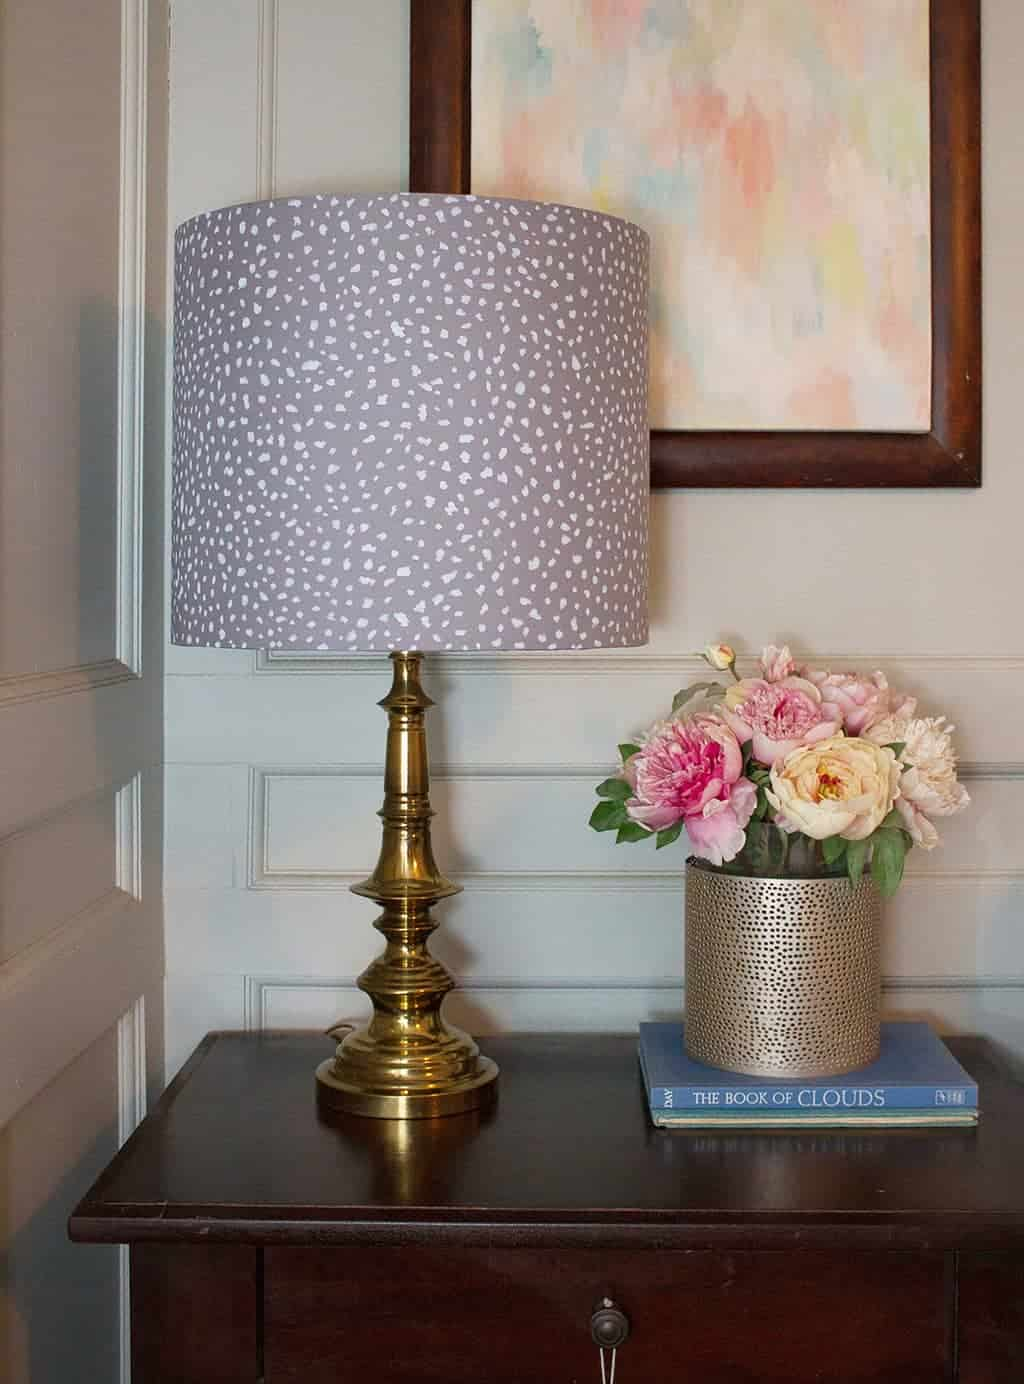 Make your own diy lamp shade from an i like that lamp kit audrey of oh so lovely blog shows you just how easy it is to make your aloadofball Images